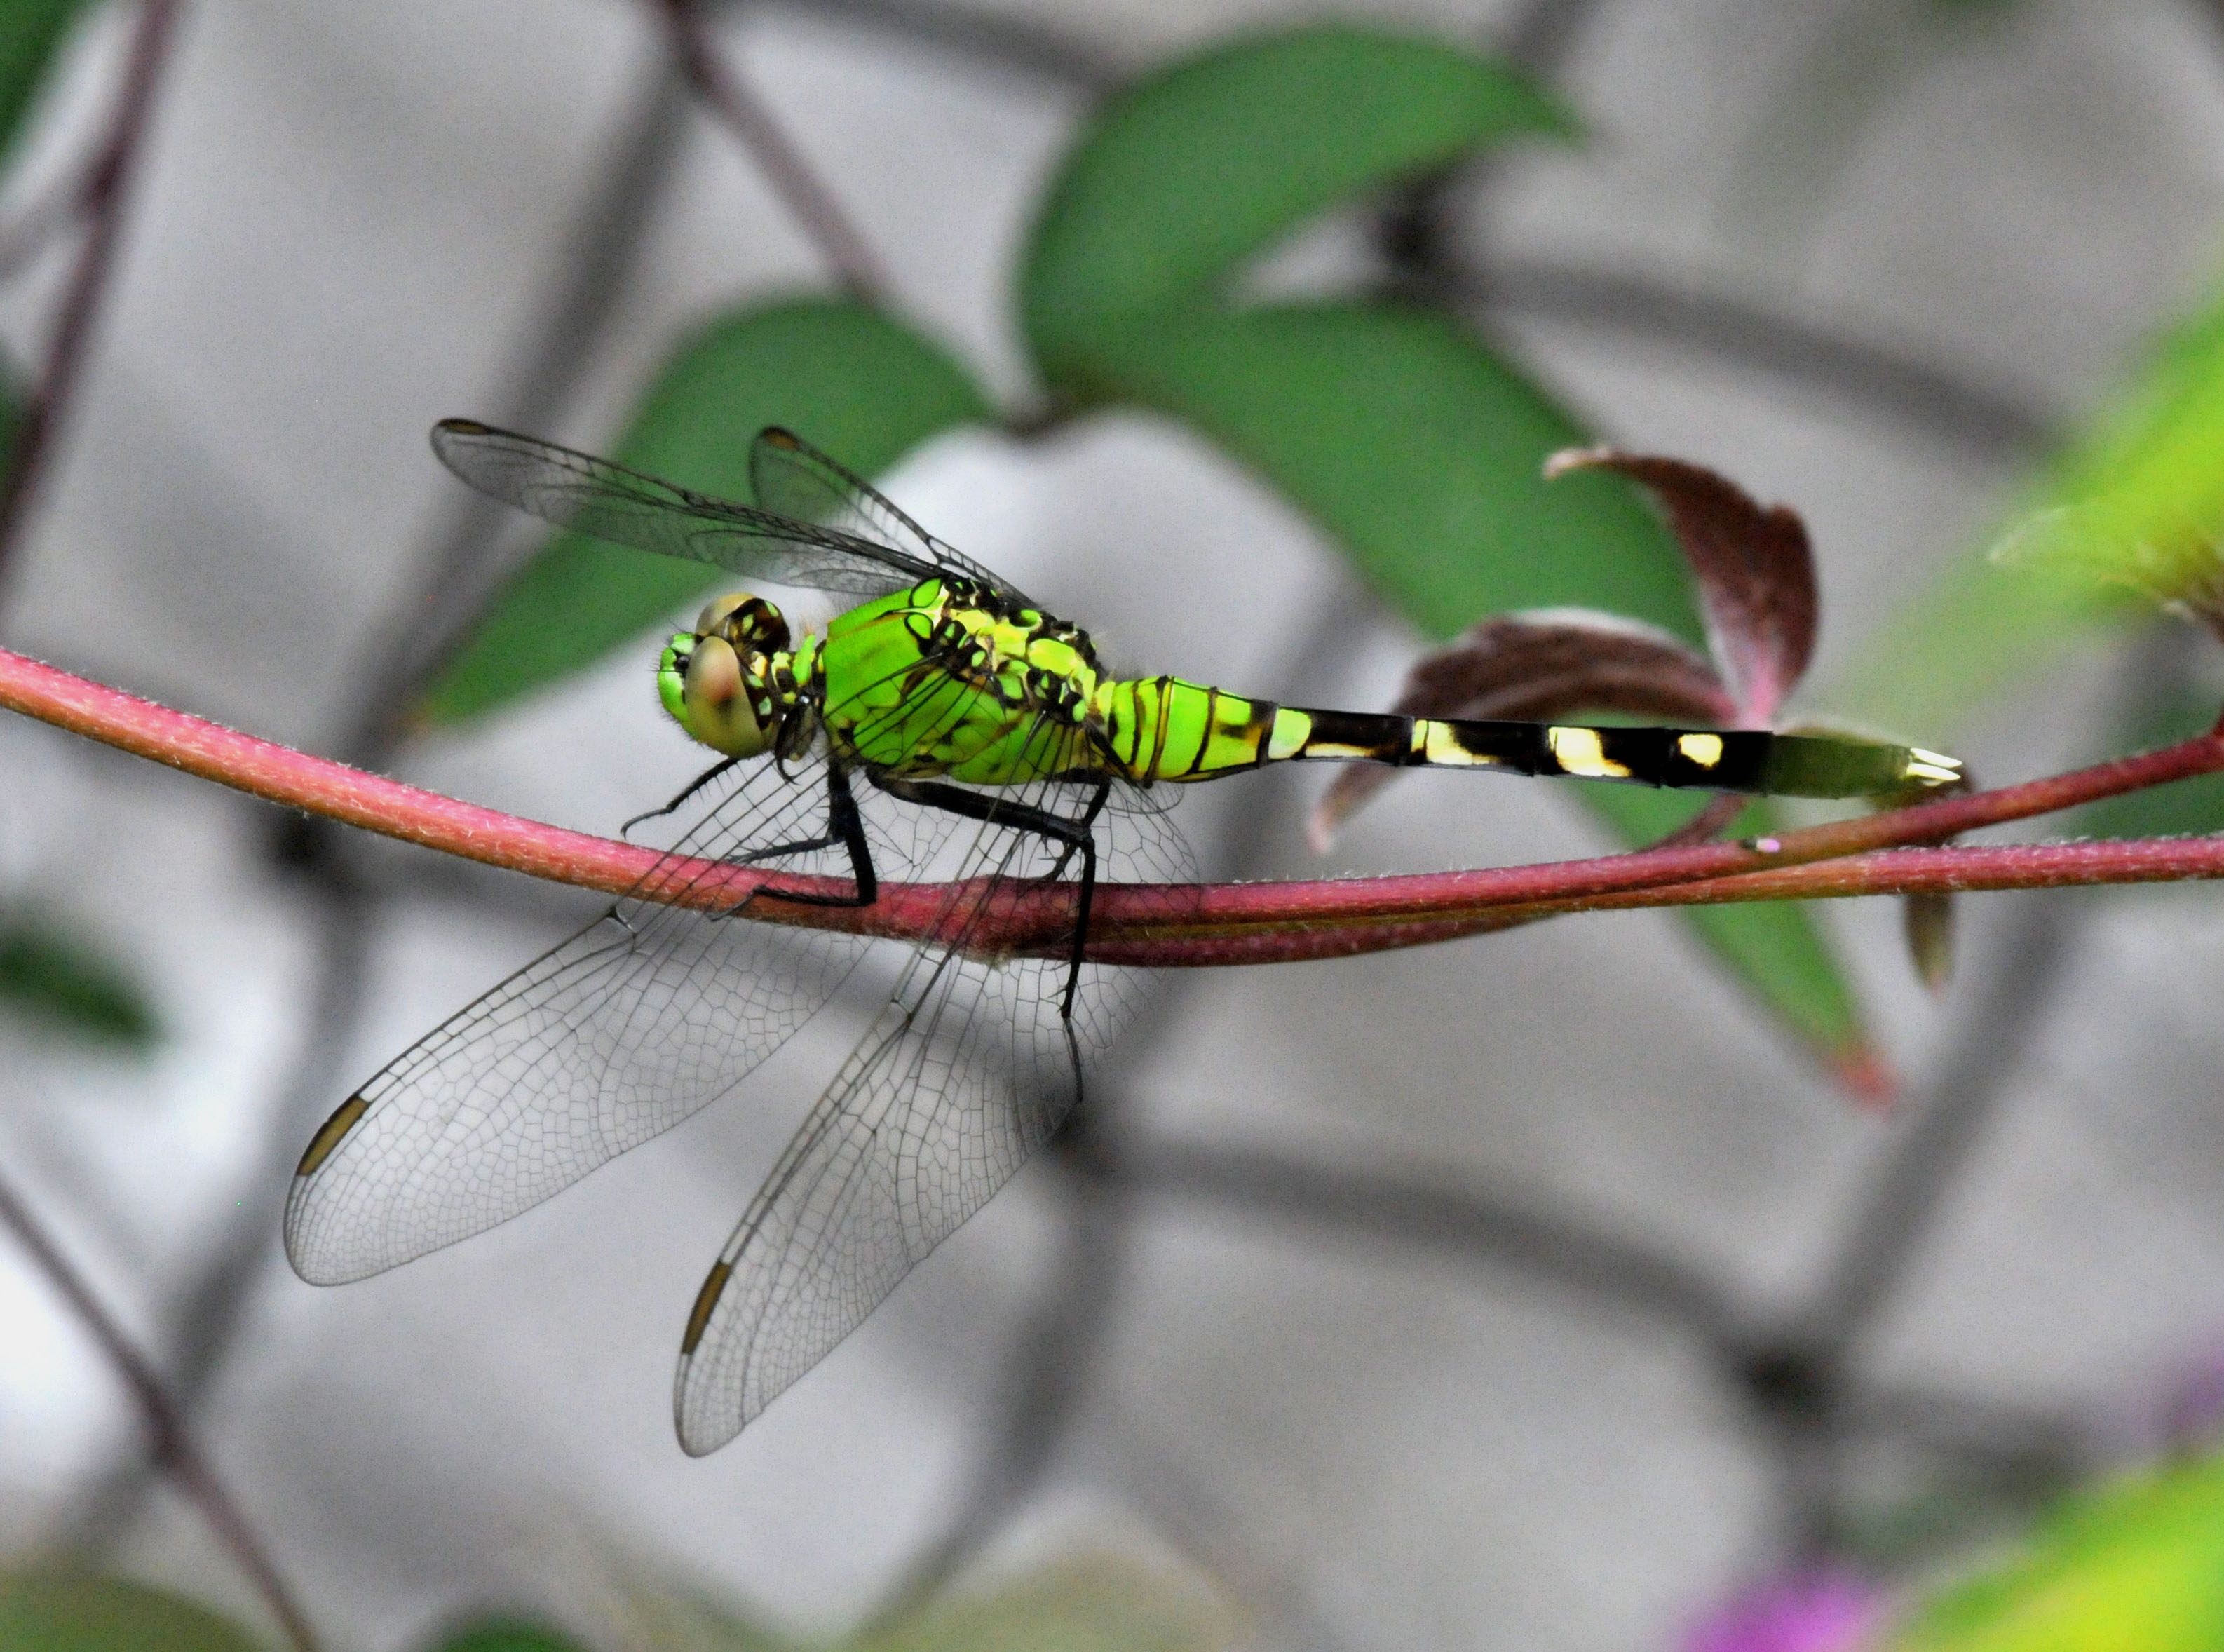 Green dragonfly pictures - photo#21